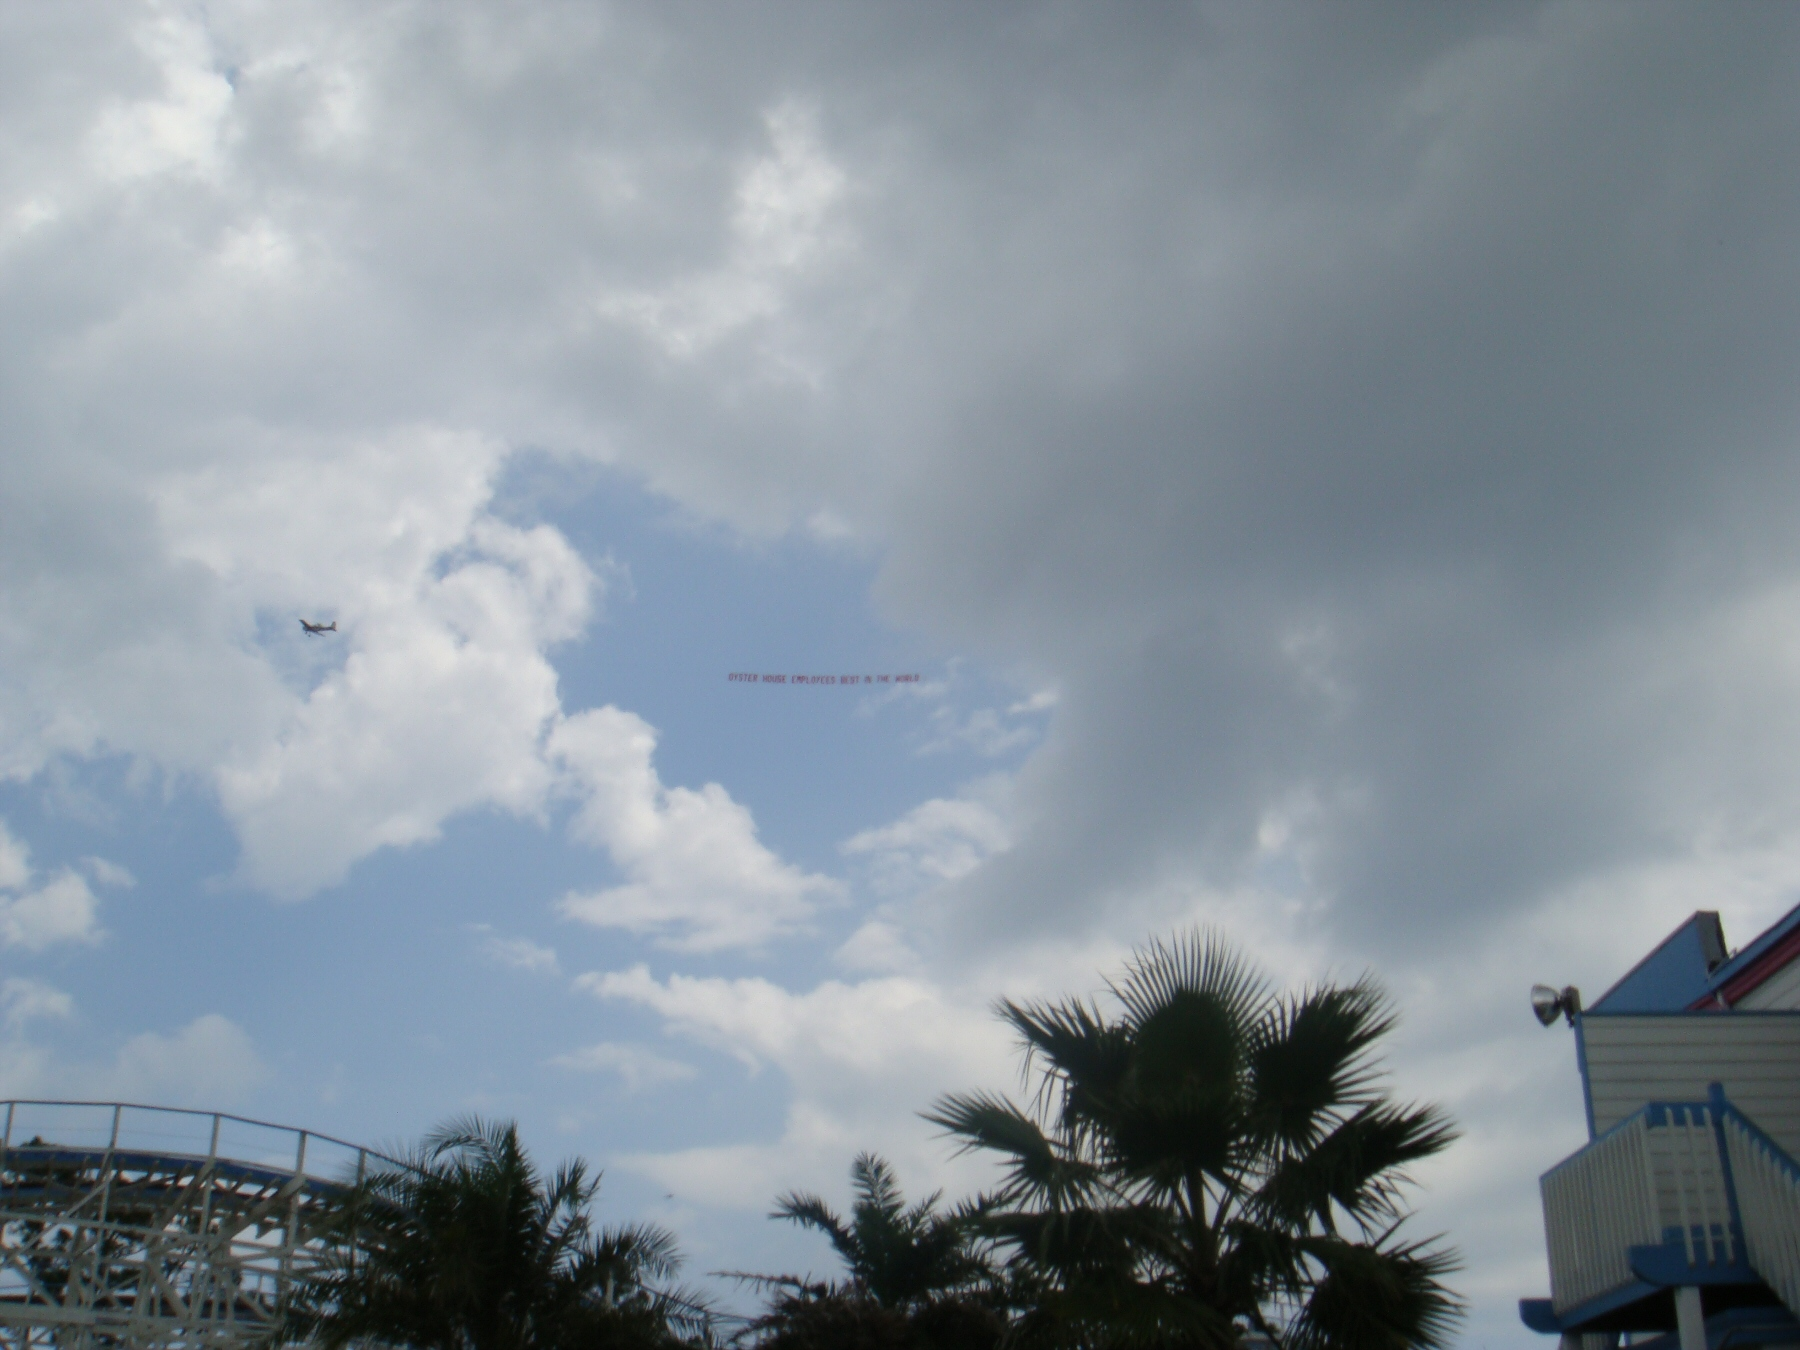 airplane flying over waterpark with banner